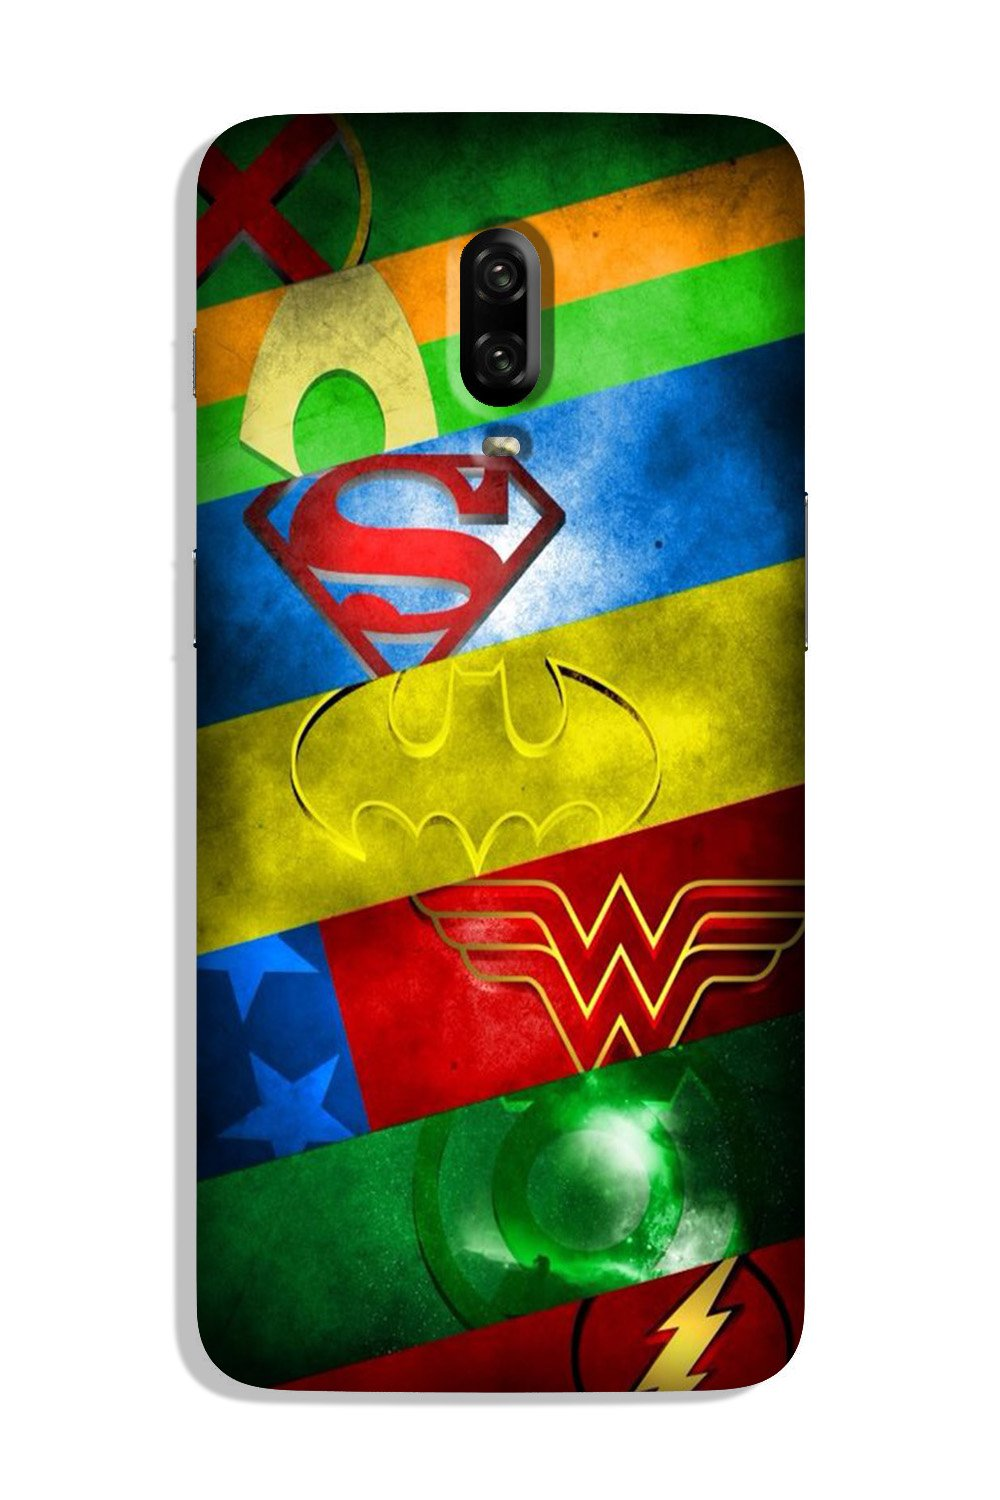 Superheros Logo Case for OnePlus 6T (Design No. 251)